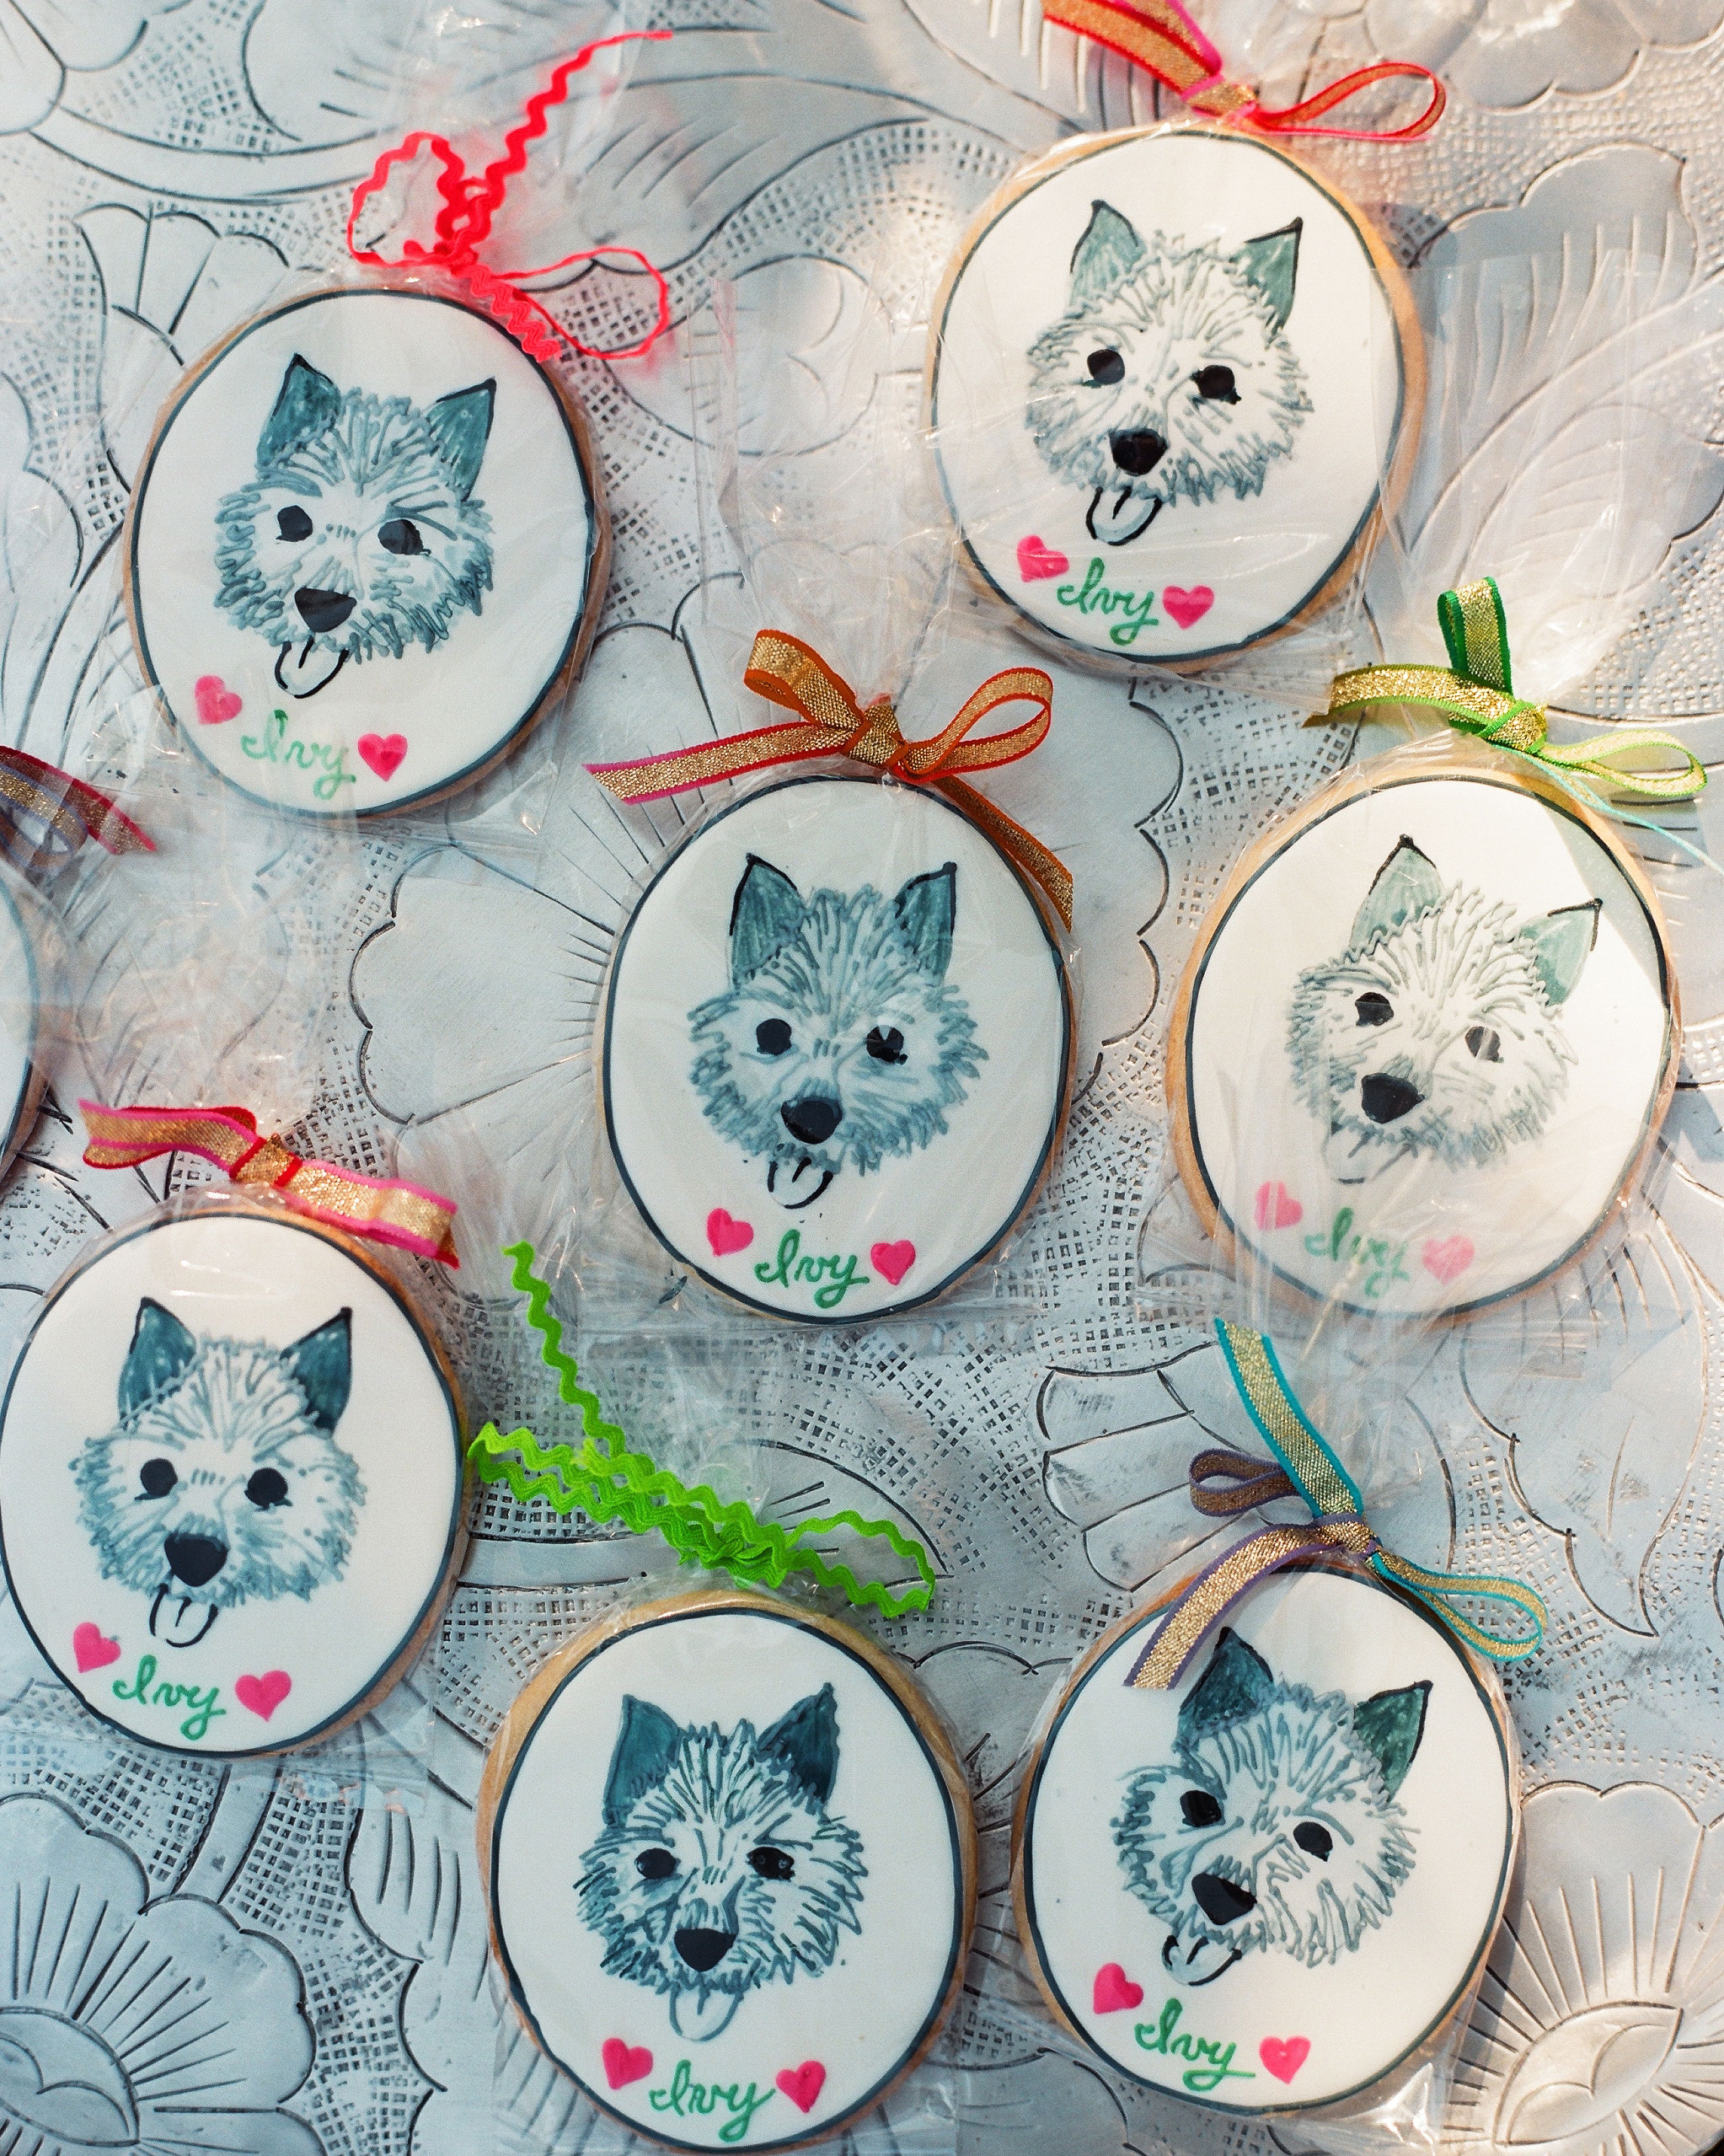 fiona-peter-wedding-dog-cookies-964206-d112512.jpg